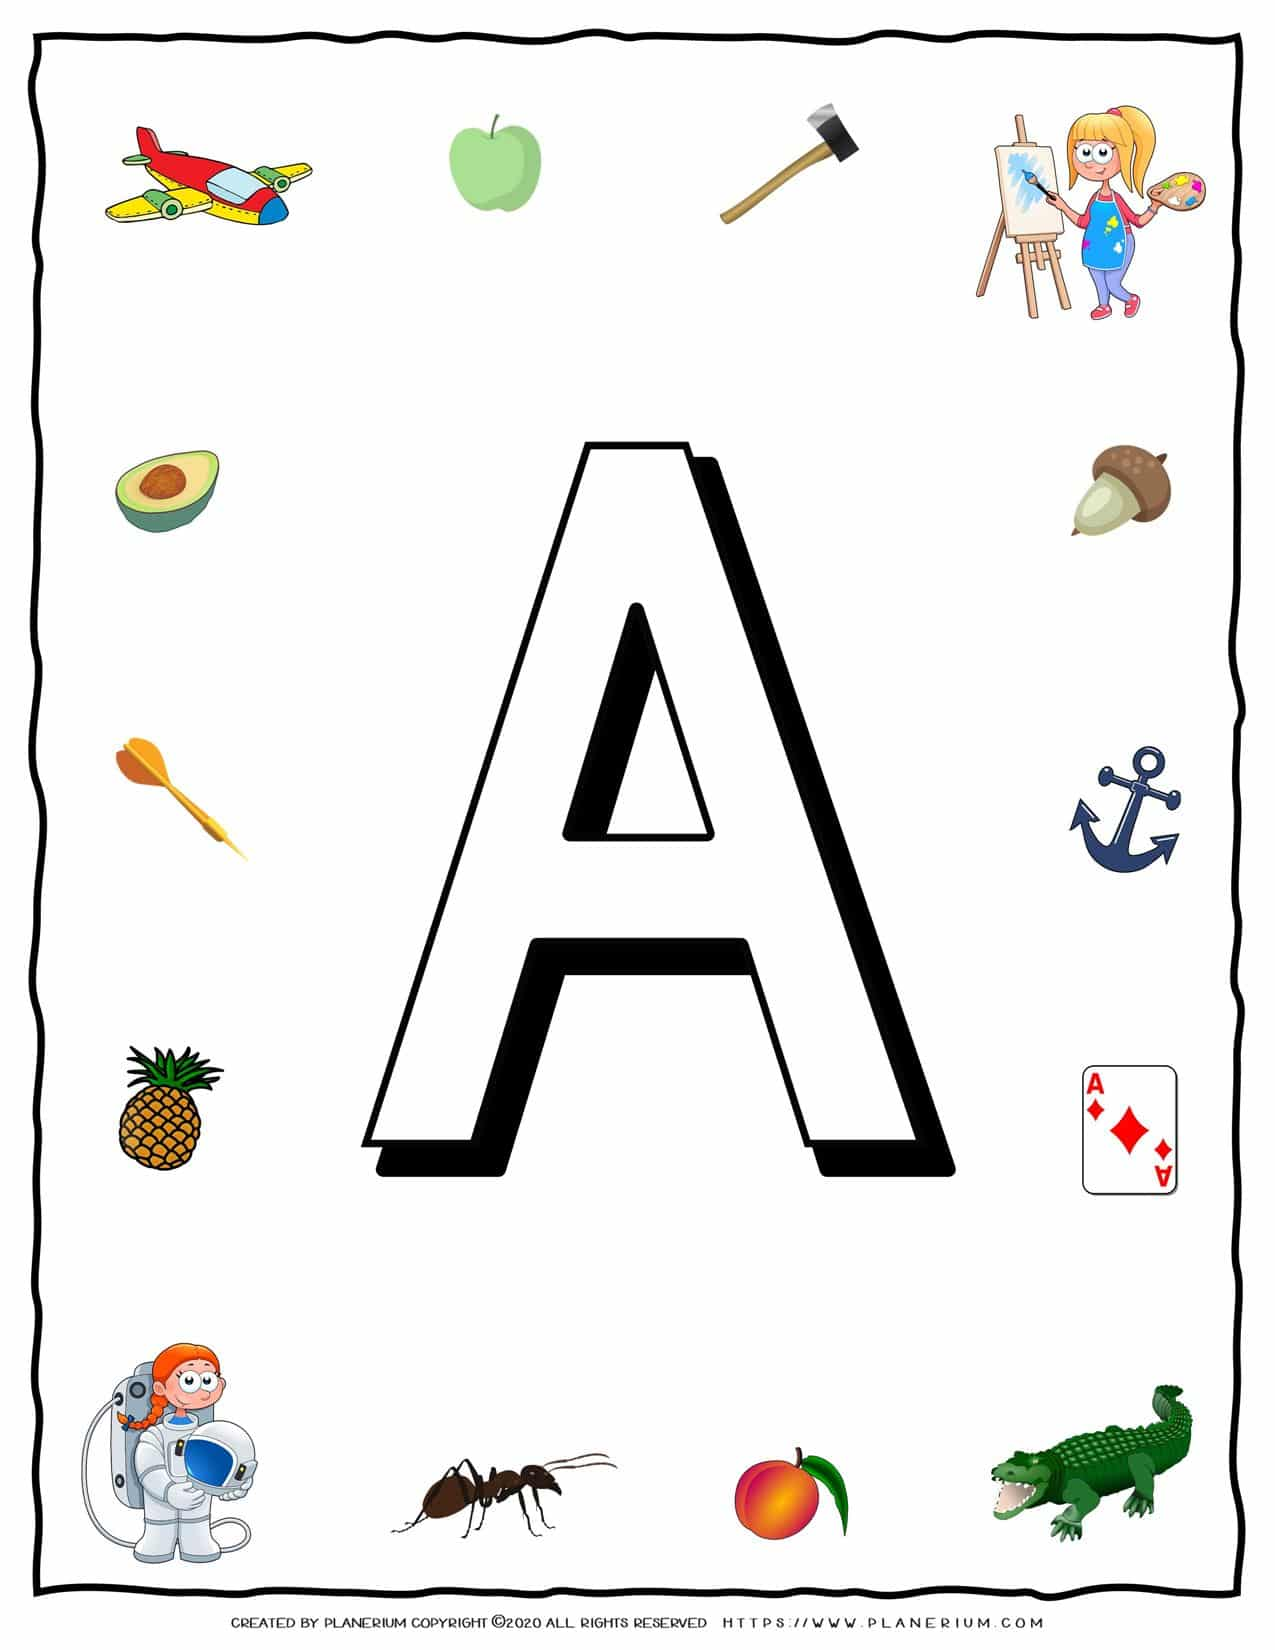 English Alphabet - Objects that starts with A   Planerium